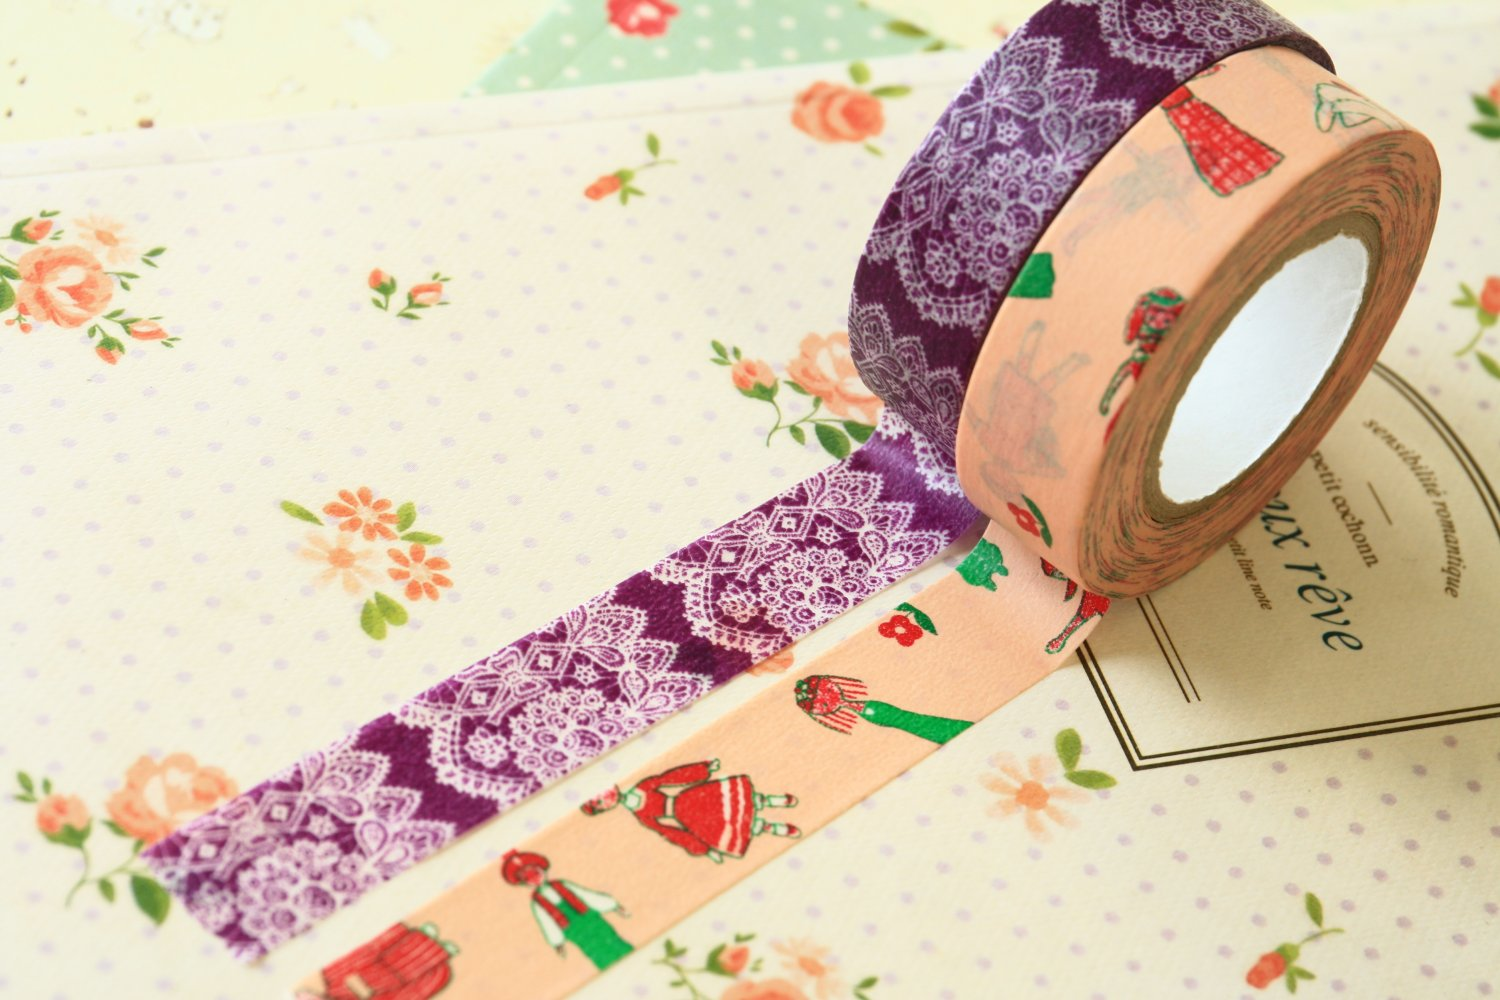 Set B Classiky Cartoon Washi Tape Set